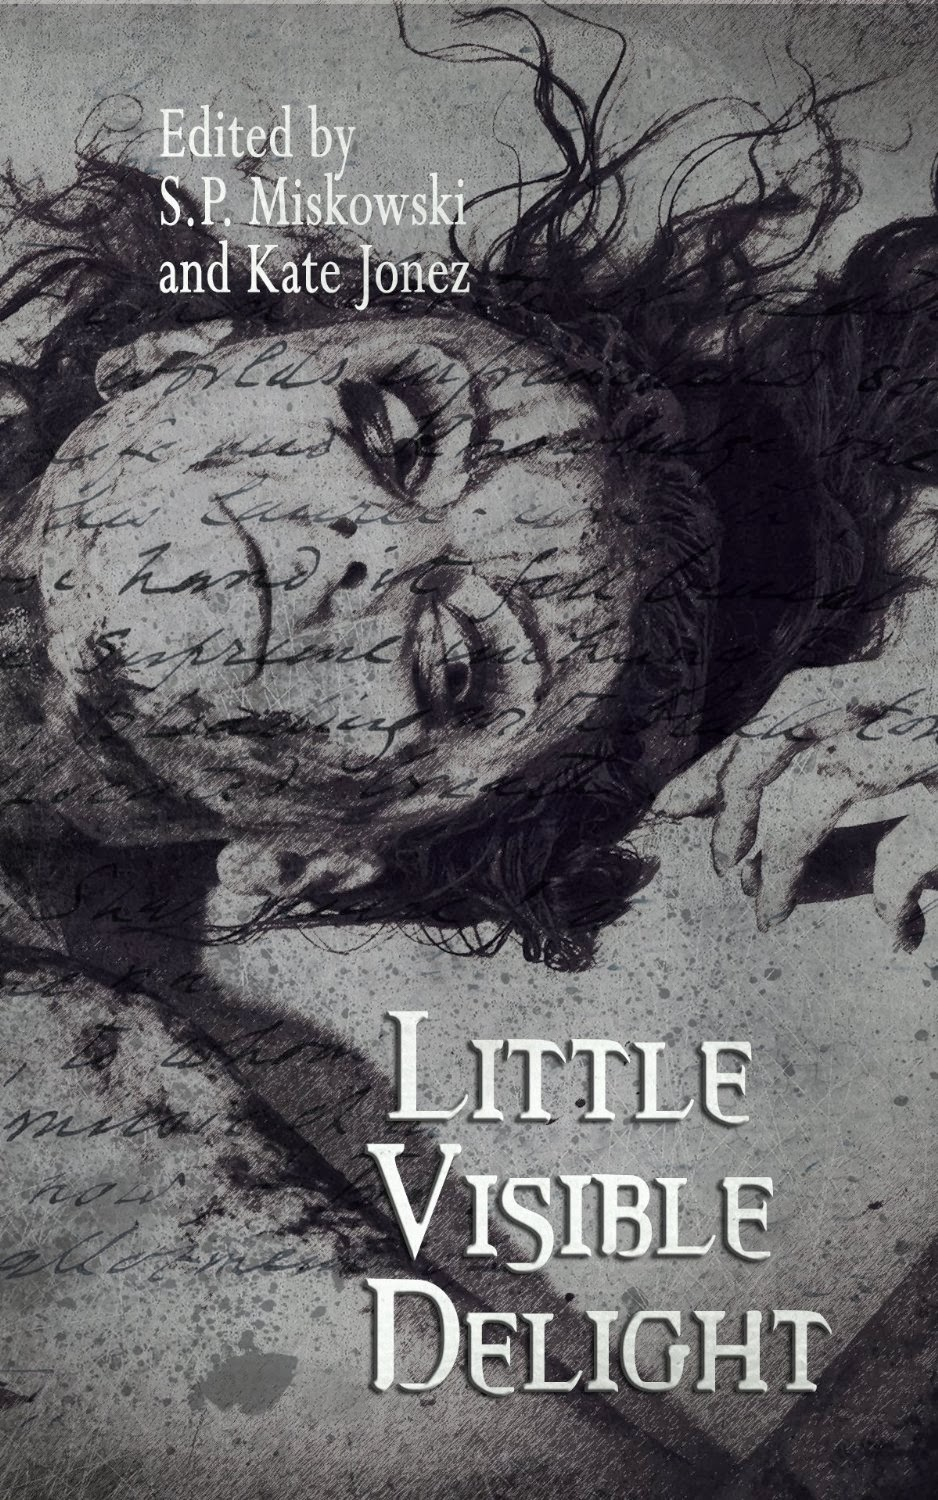 http://www.amazon.com/Little-Visible-Delight-Lynda-Rucker-ebook/dp/B00H3U3MMI/ref=sr_1_1?s=books&ie=UTF8&qid=1392519191&sr=1-1&keywords=little+visible+delight